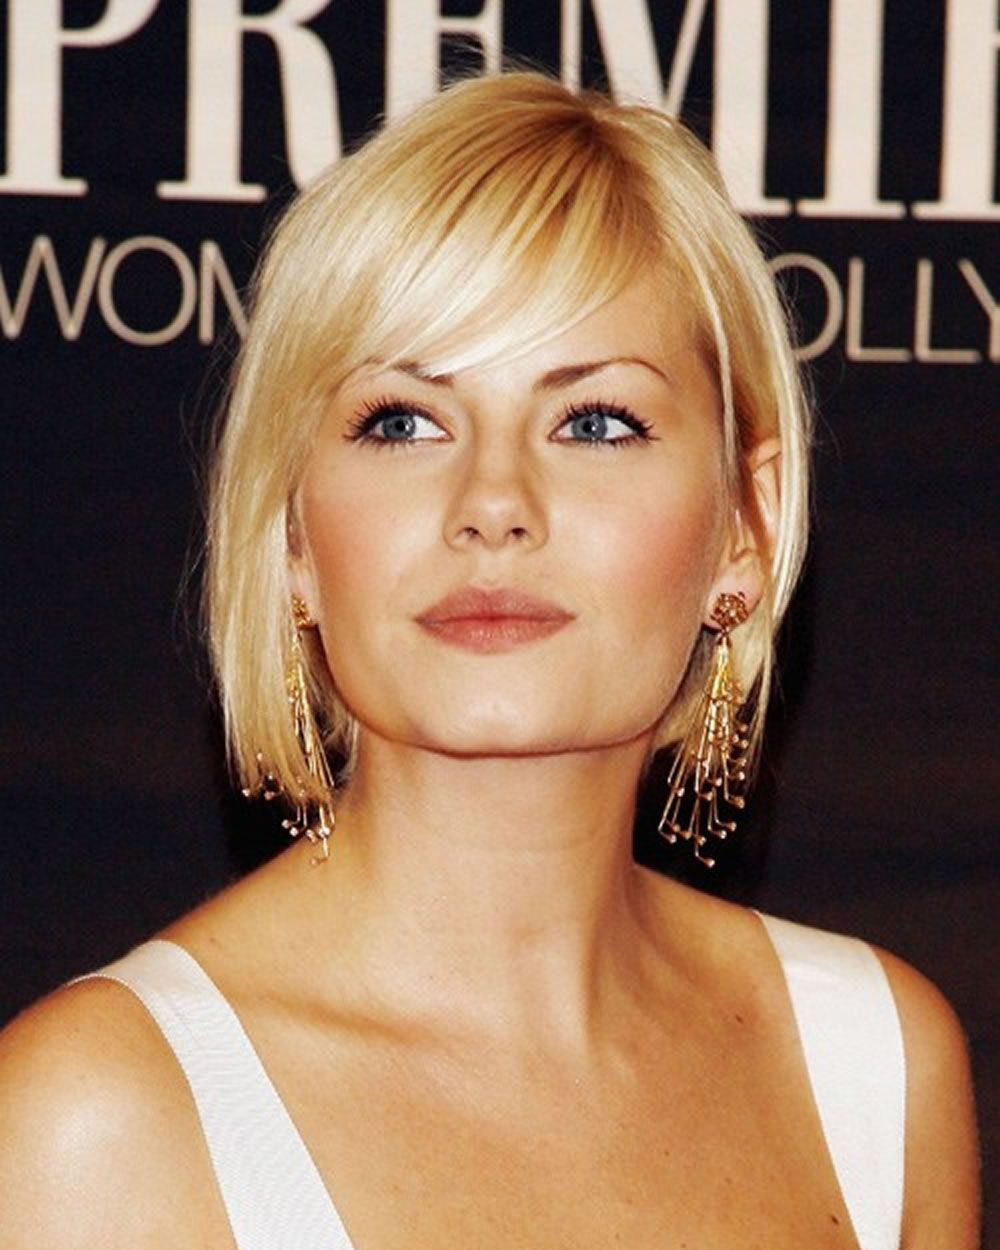 Square Face Short Bob Haircut 2020 2021 Thin Fine Hair Bob Hairstyles For Fine Hair Short Bob Hairstyles